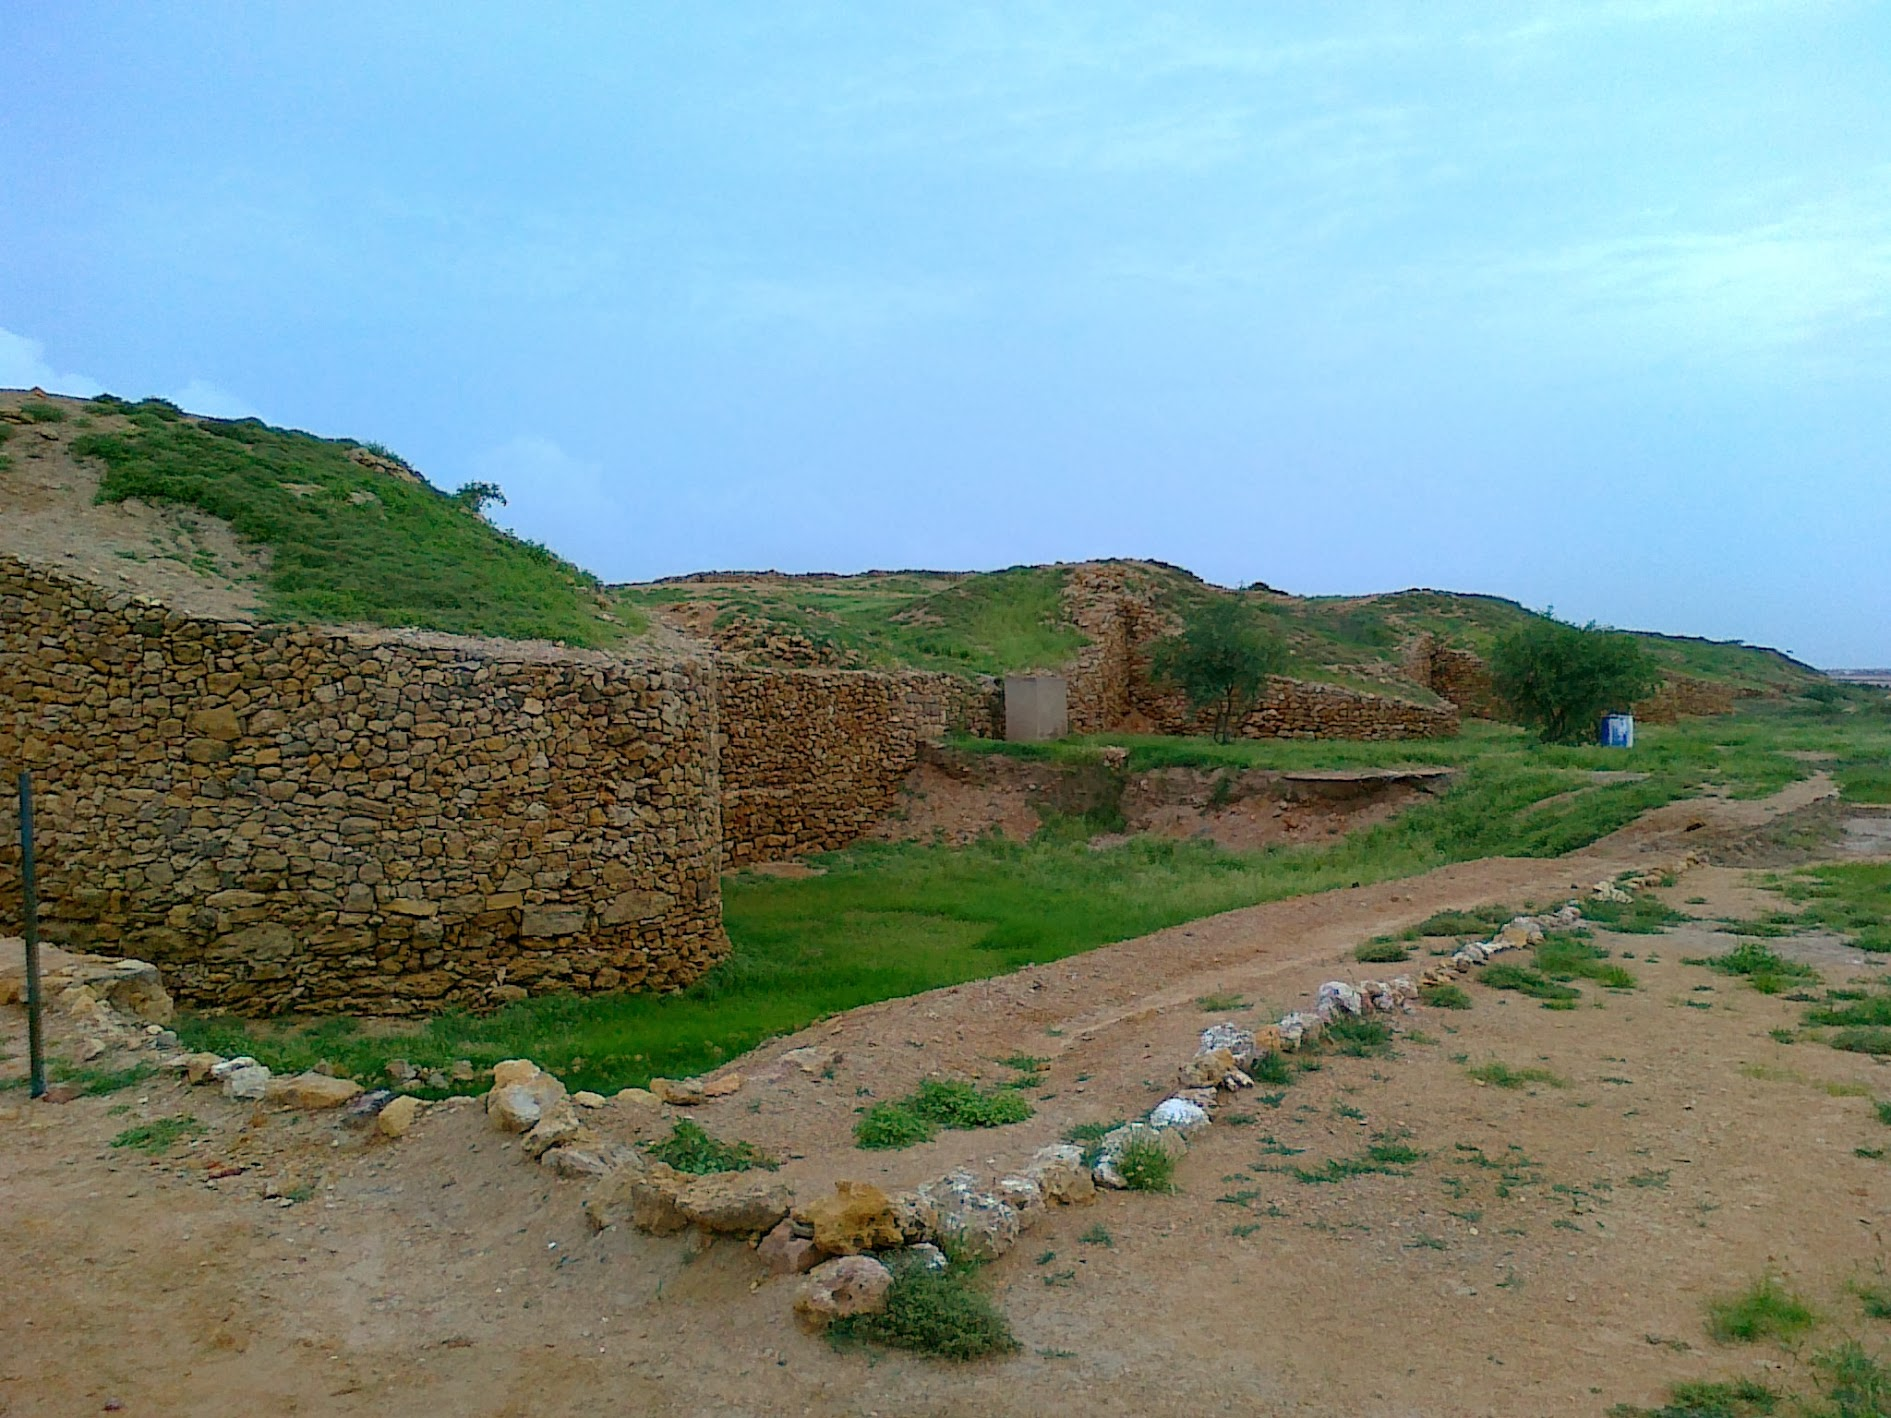 Bastions on fortification wall